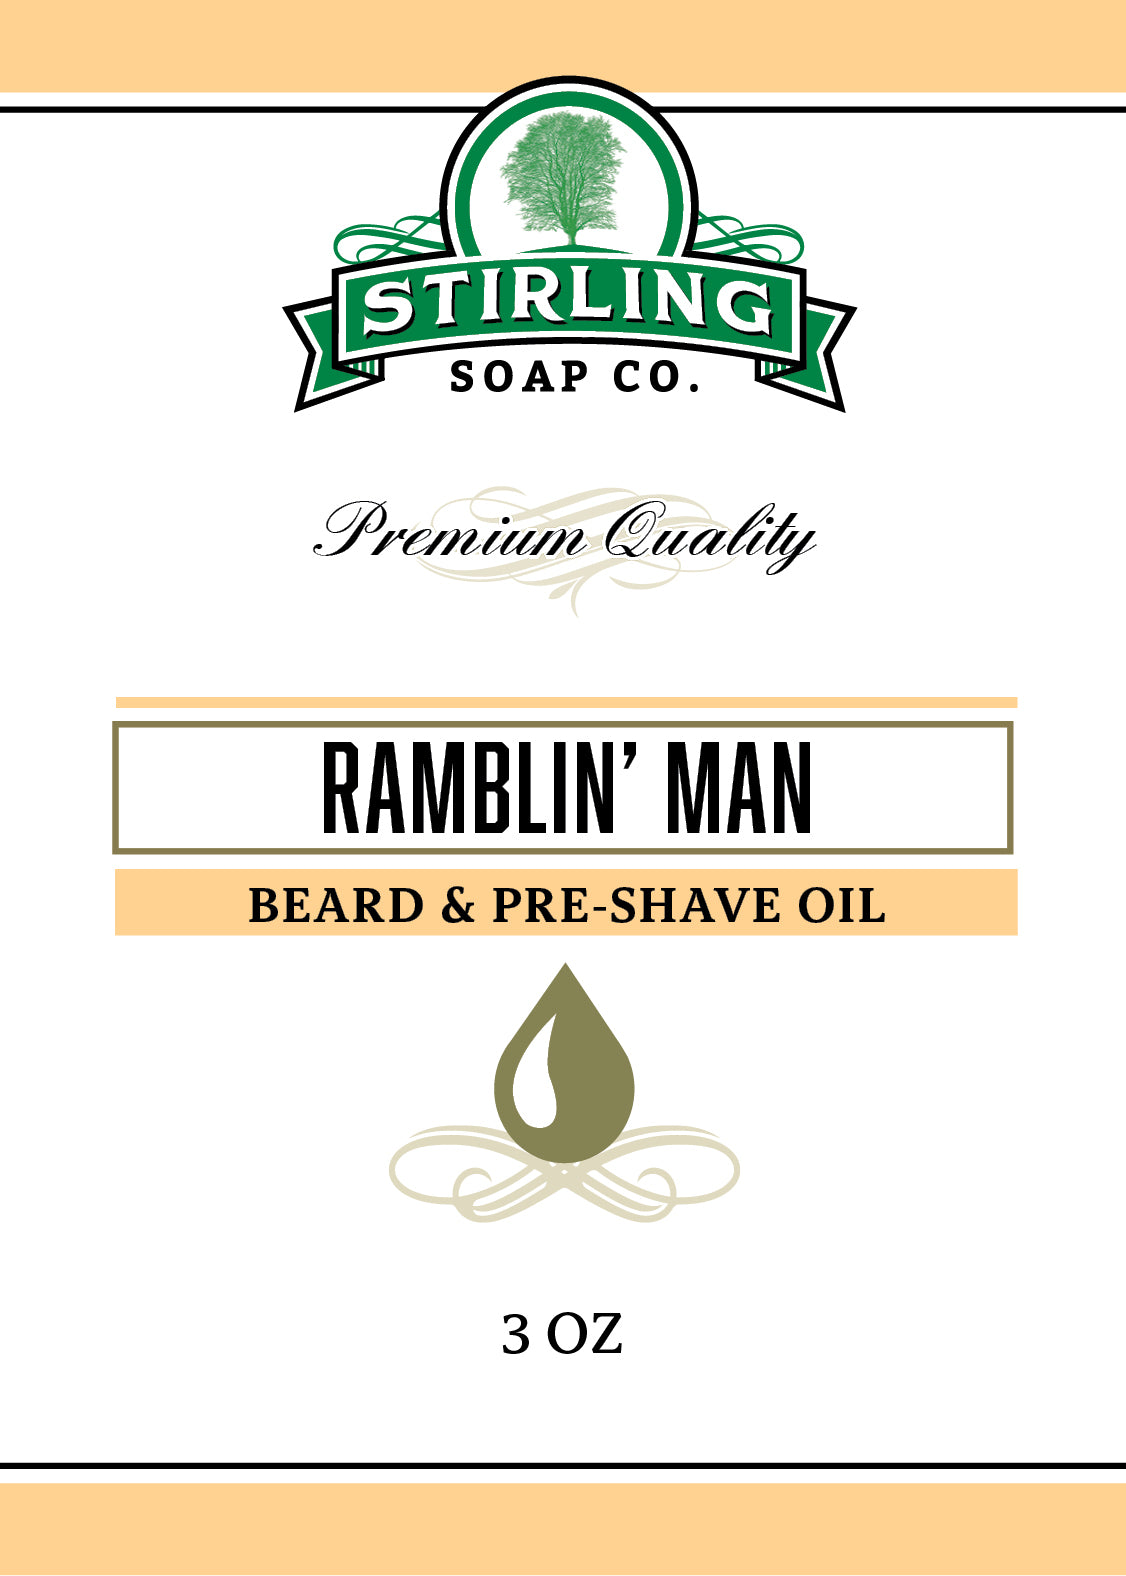 Ramblin' Man - Beard & Pre-Shave Oil